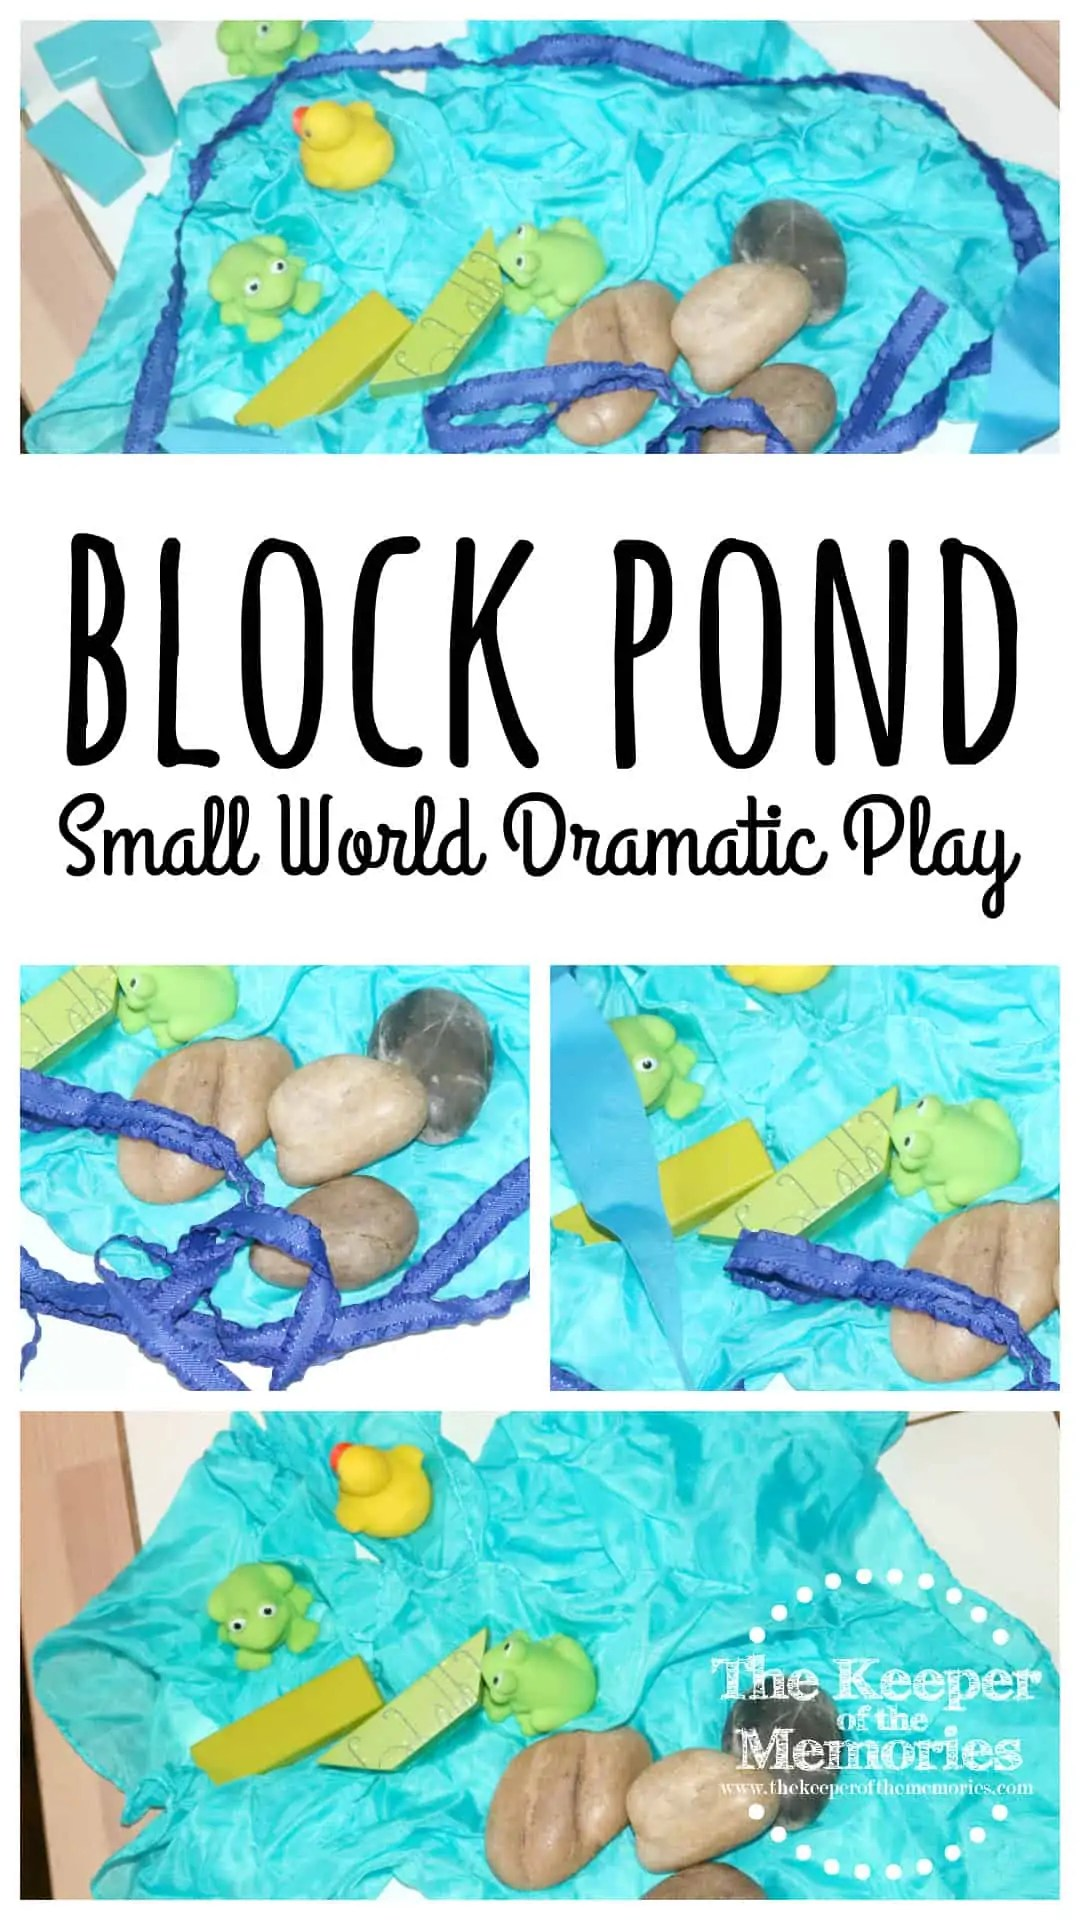 Block Pond Small World Dramatic Play